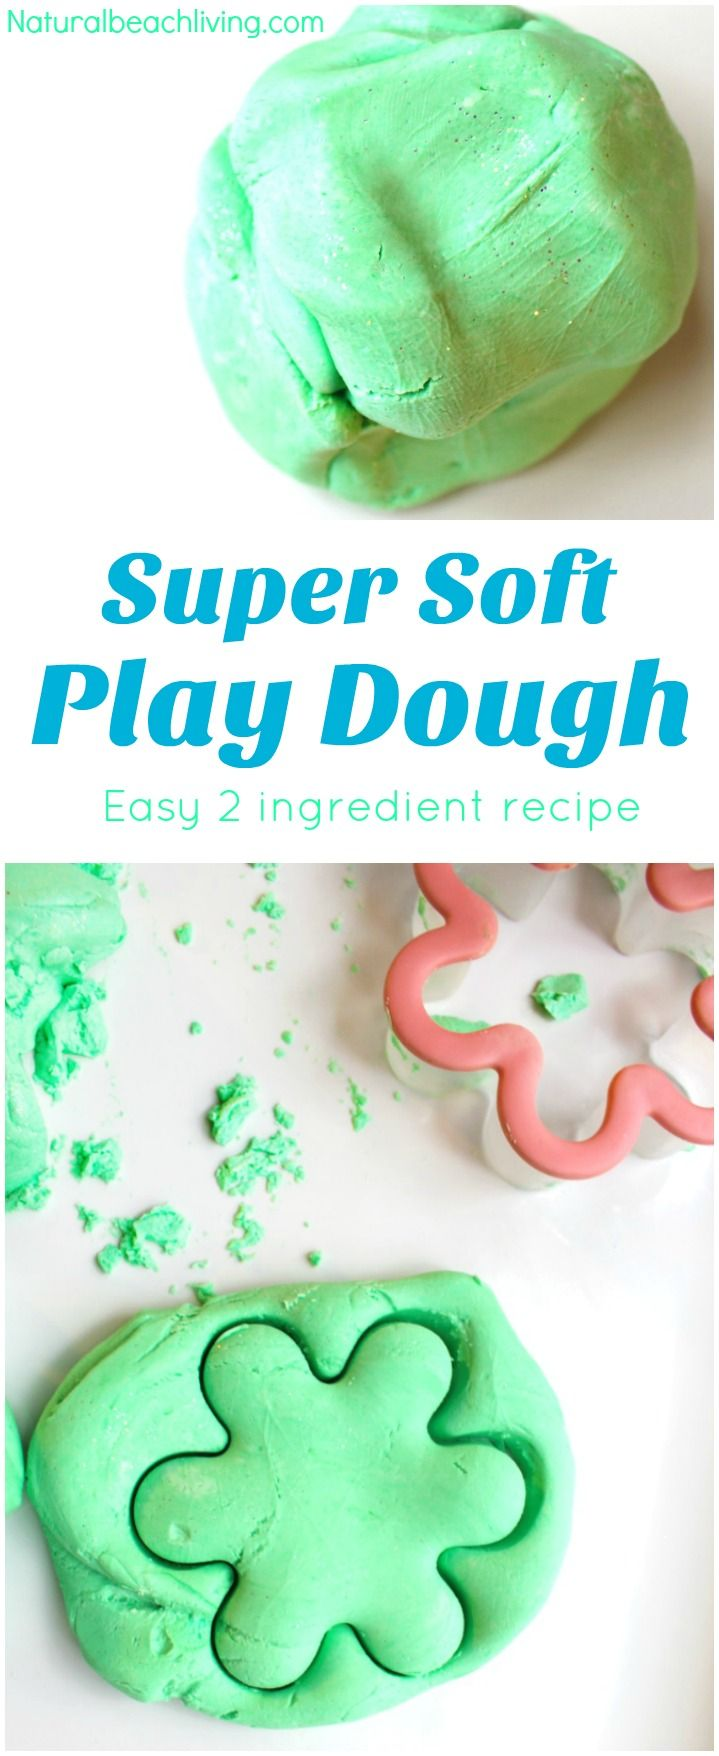 The Easiest and softest 2 ingredient PLAY DOUGH RECIPE Apple Scented Play Dough Recipe:      1 cup Cornstarch     4 oz. Apple scented conditioner